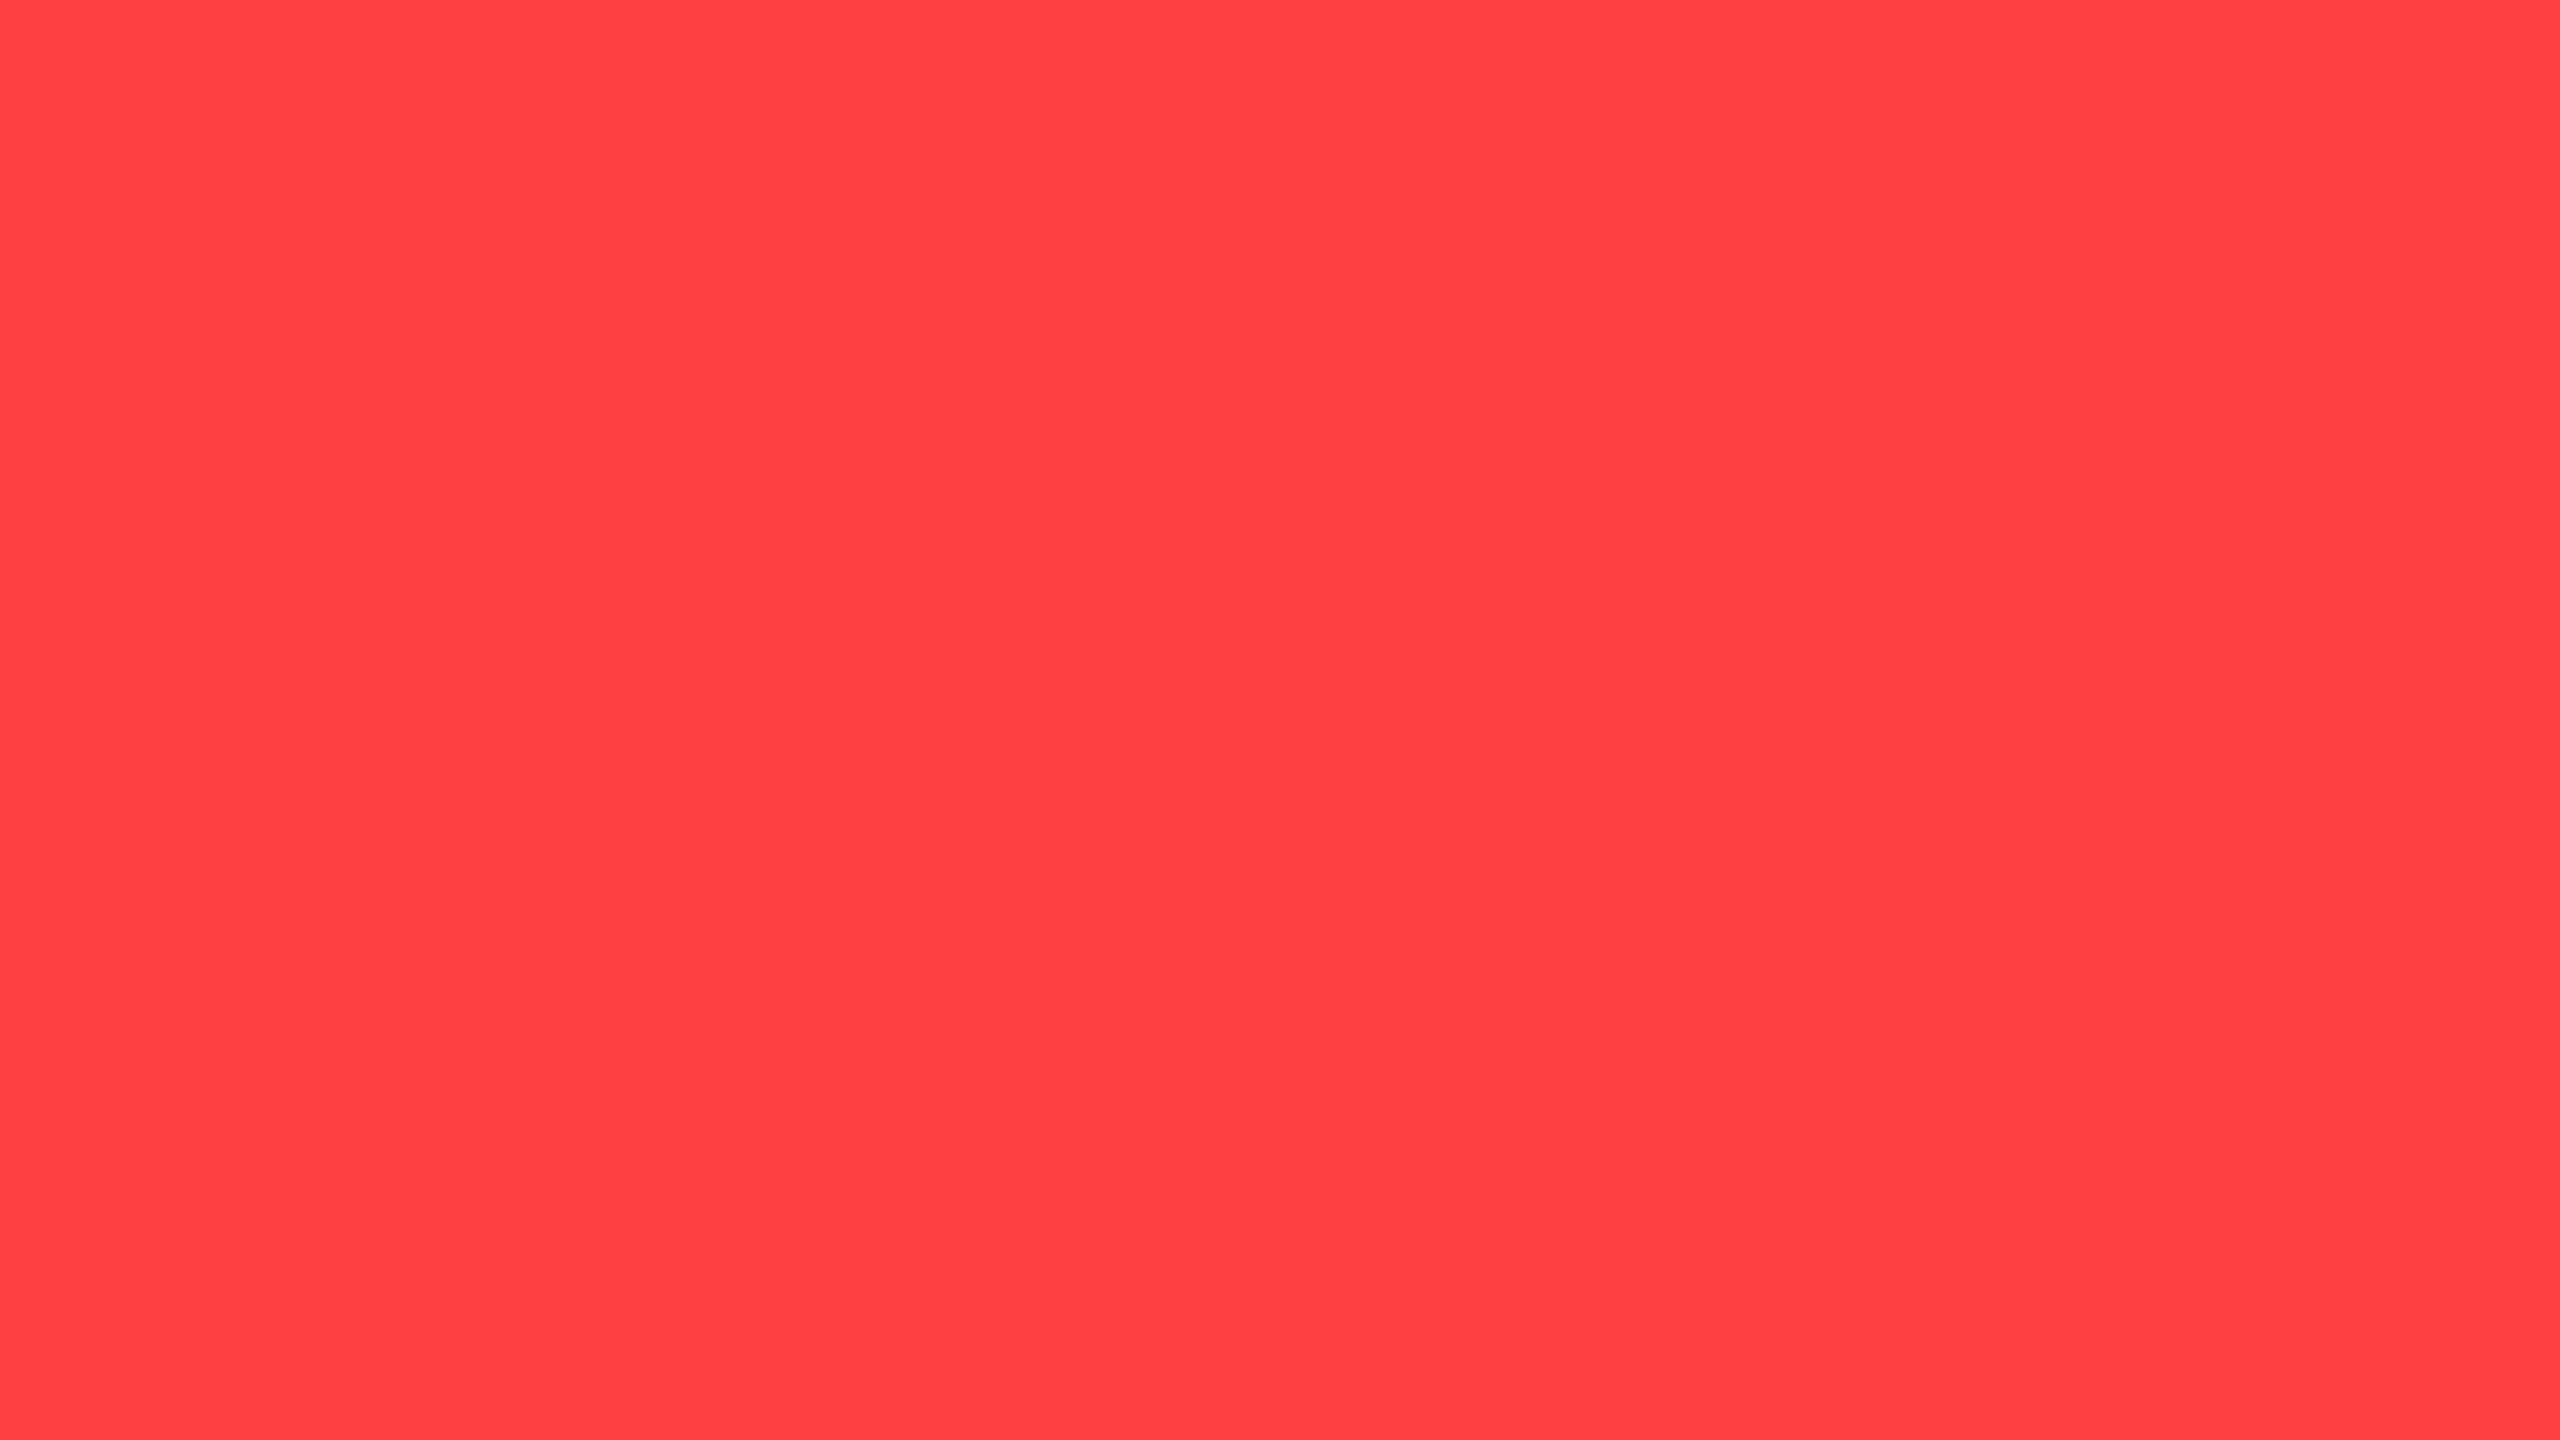 2560x1440 resolution Coral Red solid color background view and 2560x1440